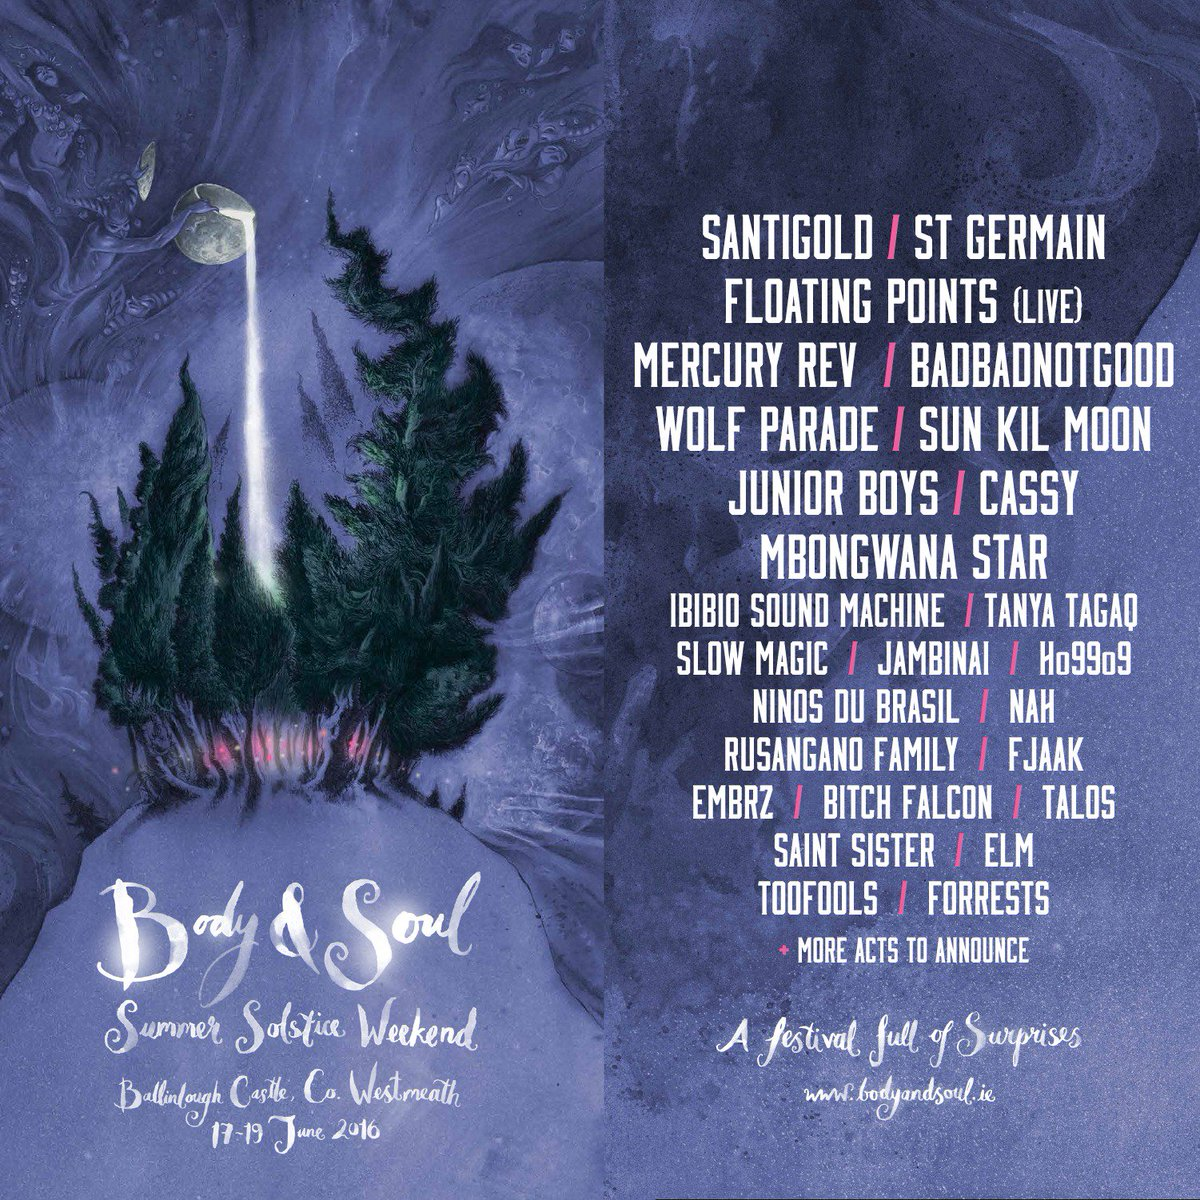 Follow the lights deep into the woods this summer solstice, where you'll find... #bodysoul16 https://t.co/vh6Hdh9Kh8 https://t.co/v9wjL3J0MF